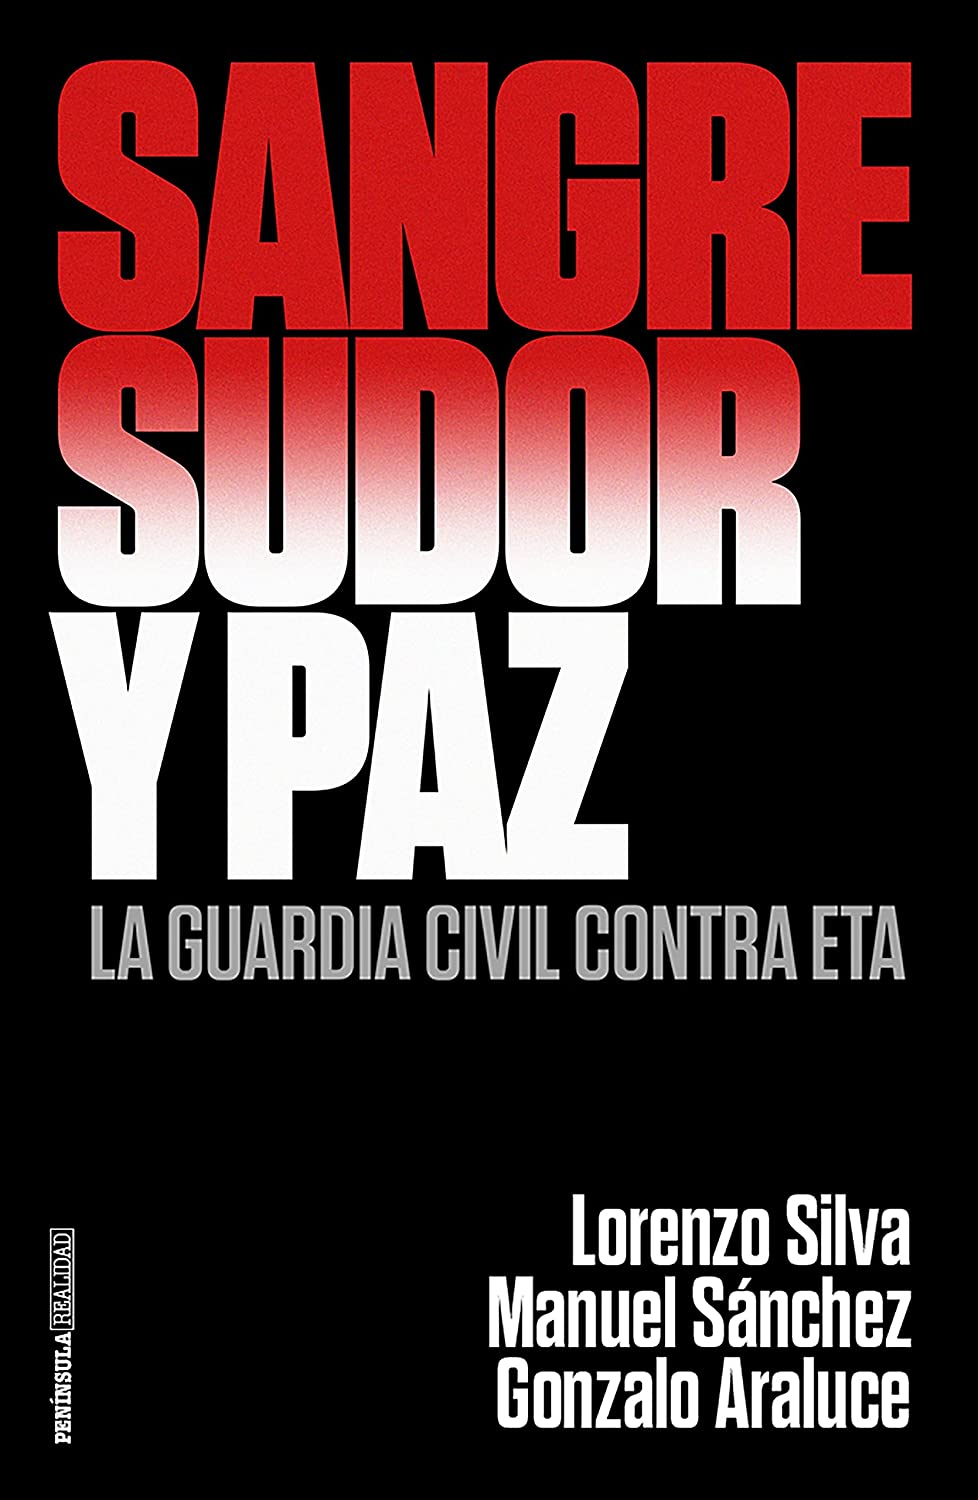 Sangre, sudor y paz: La Guardia Civil contra ETA eBook: Silva ...